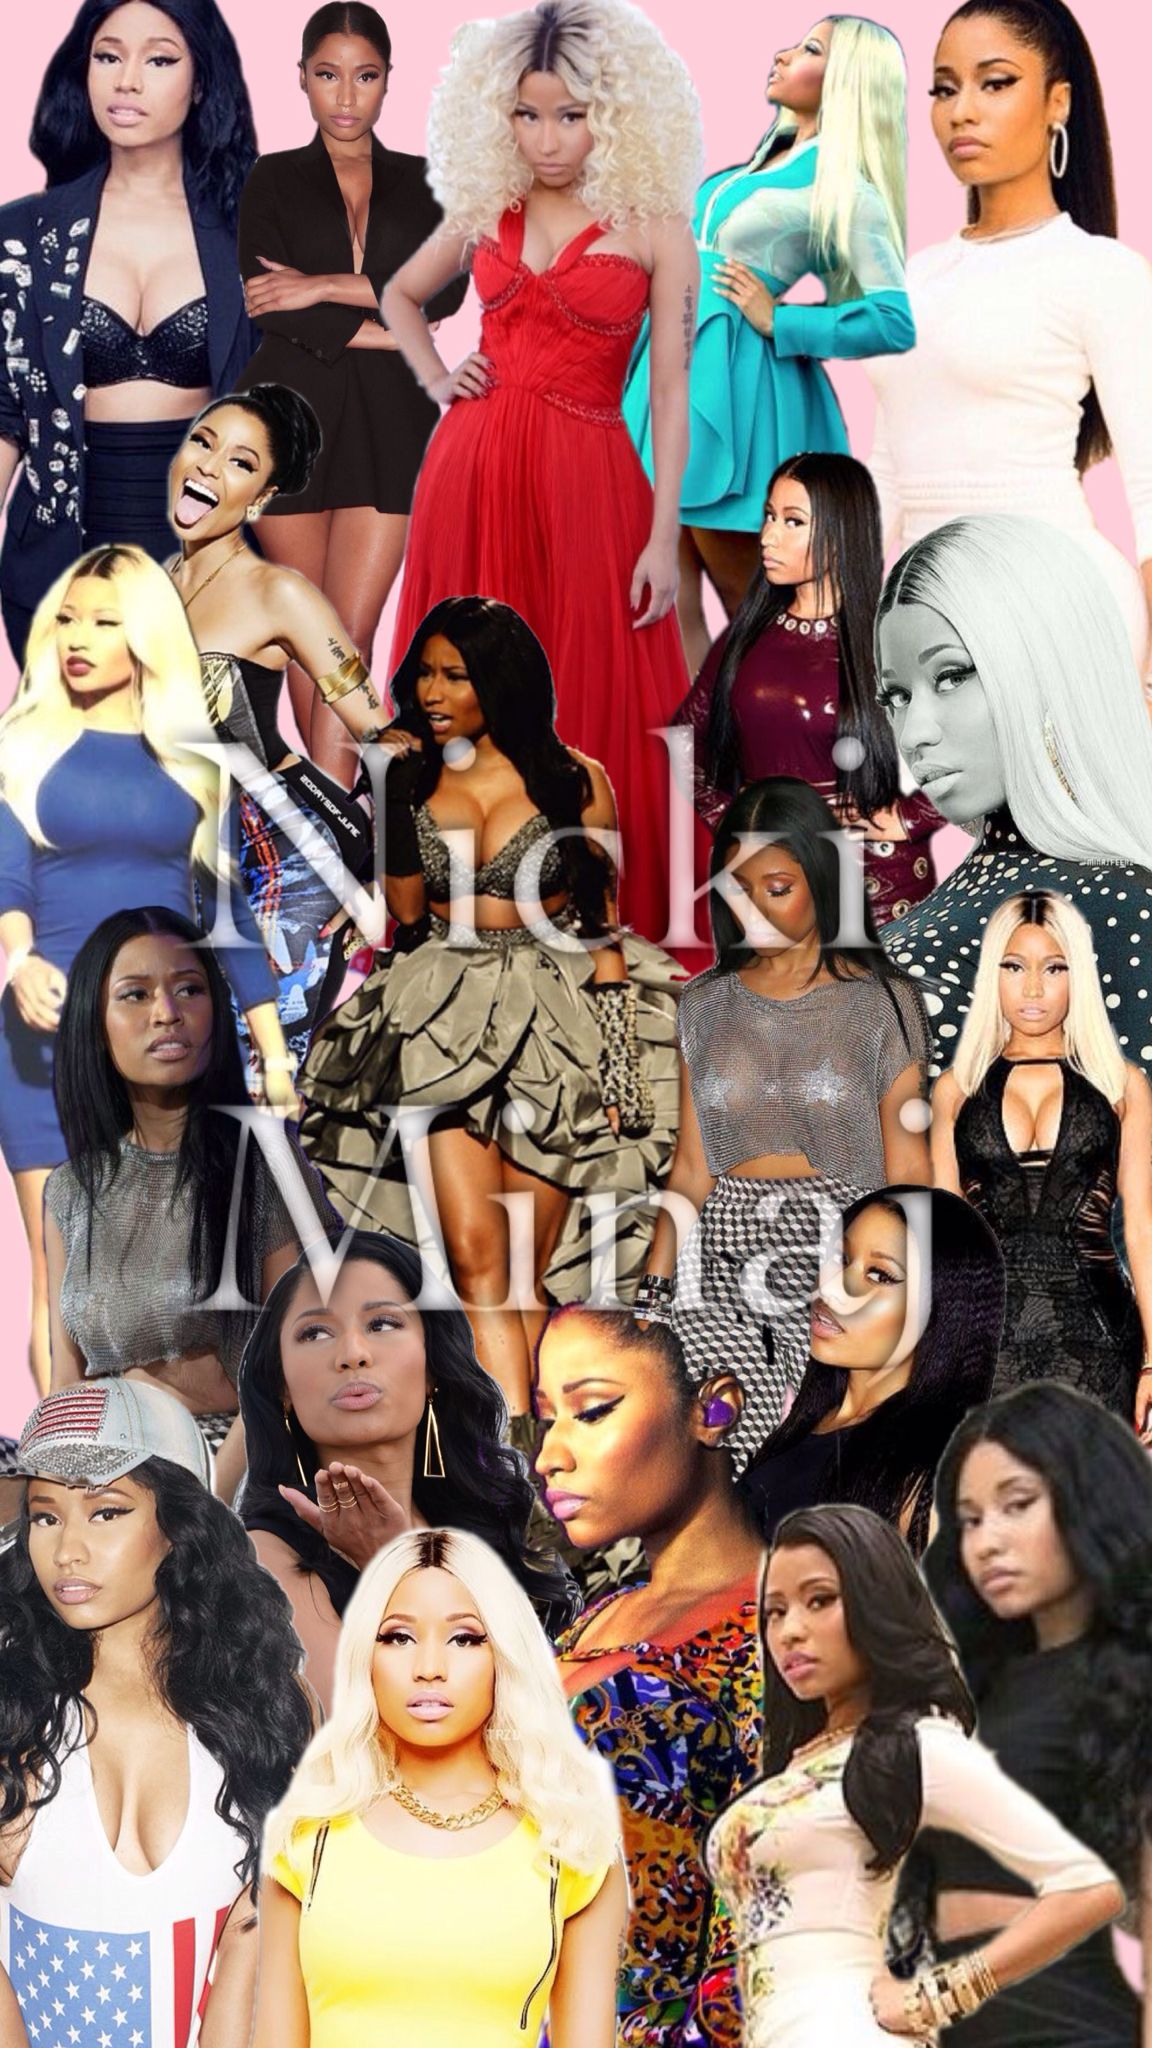 Nicki minaj iphone wallpaper nicki minaj pinterest nicki minaj nicki minaj iphone wallpaper voltagebd Image collections